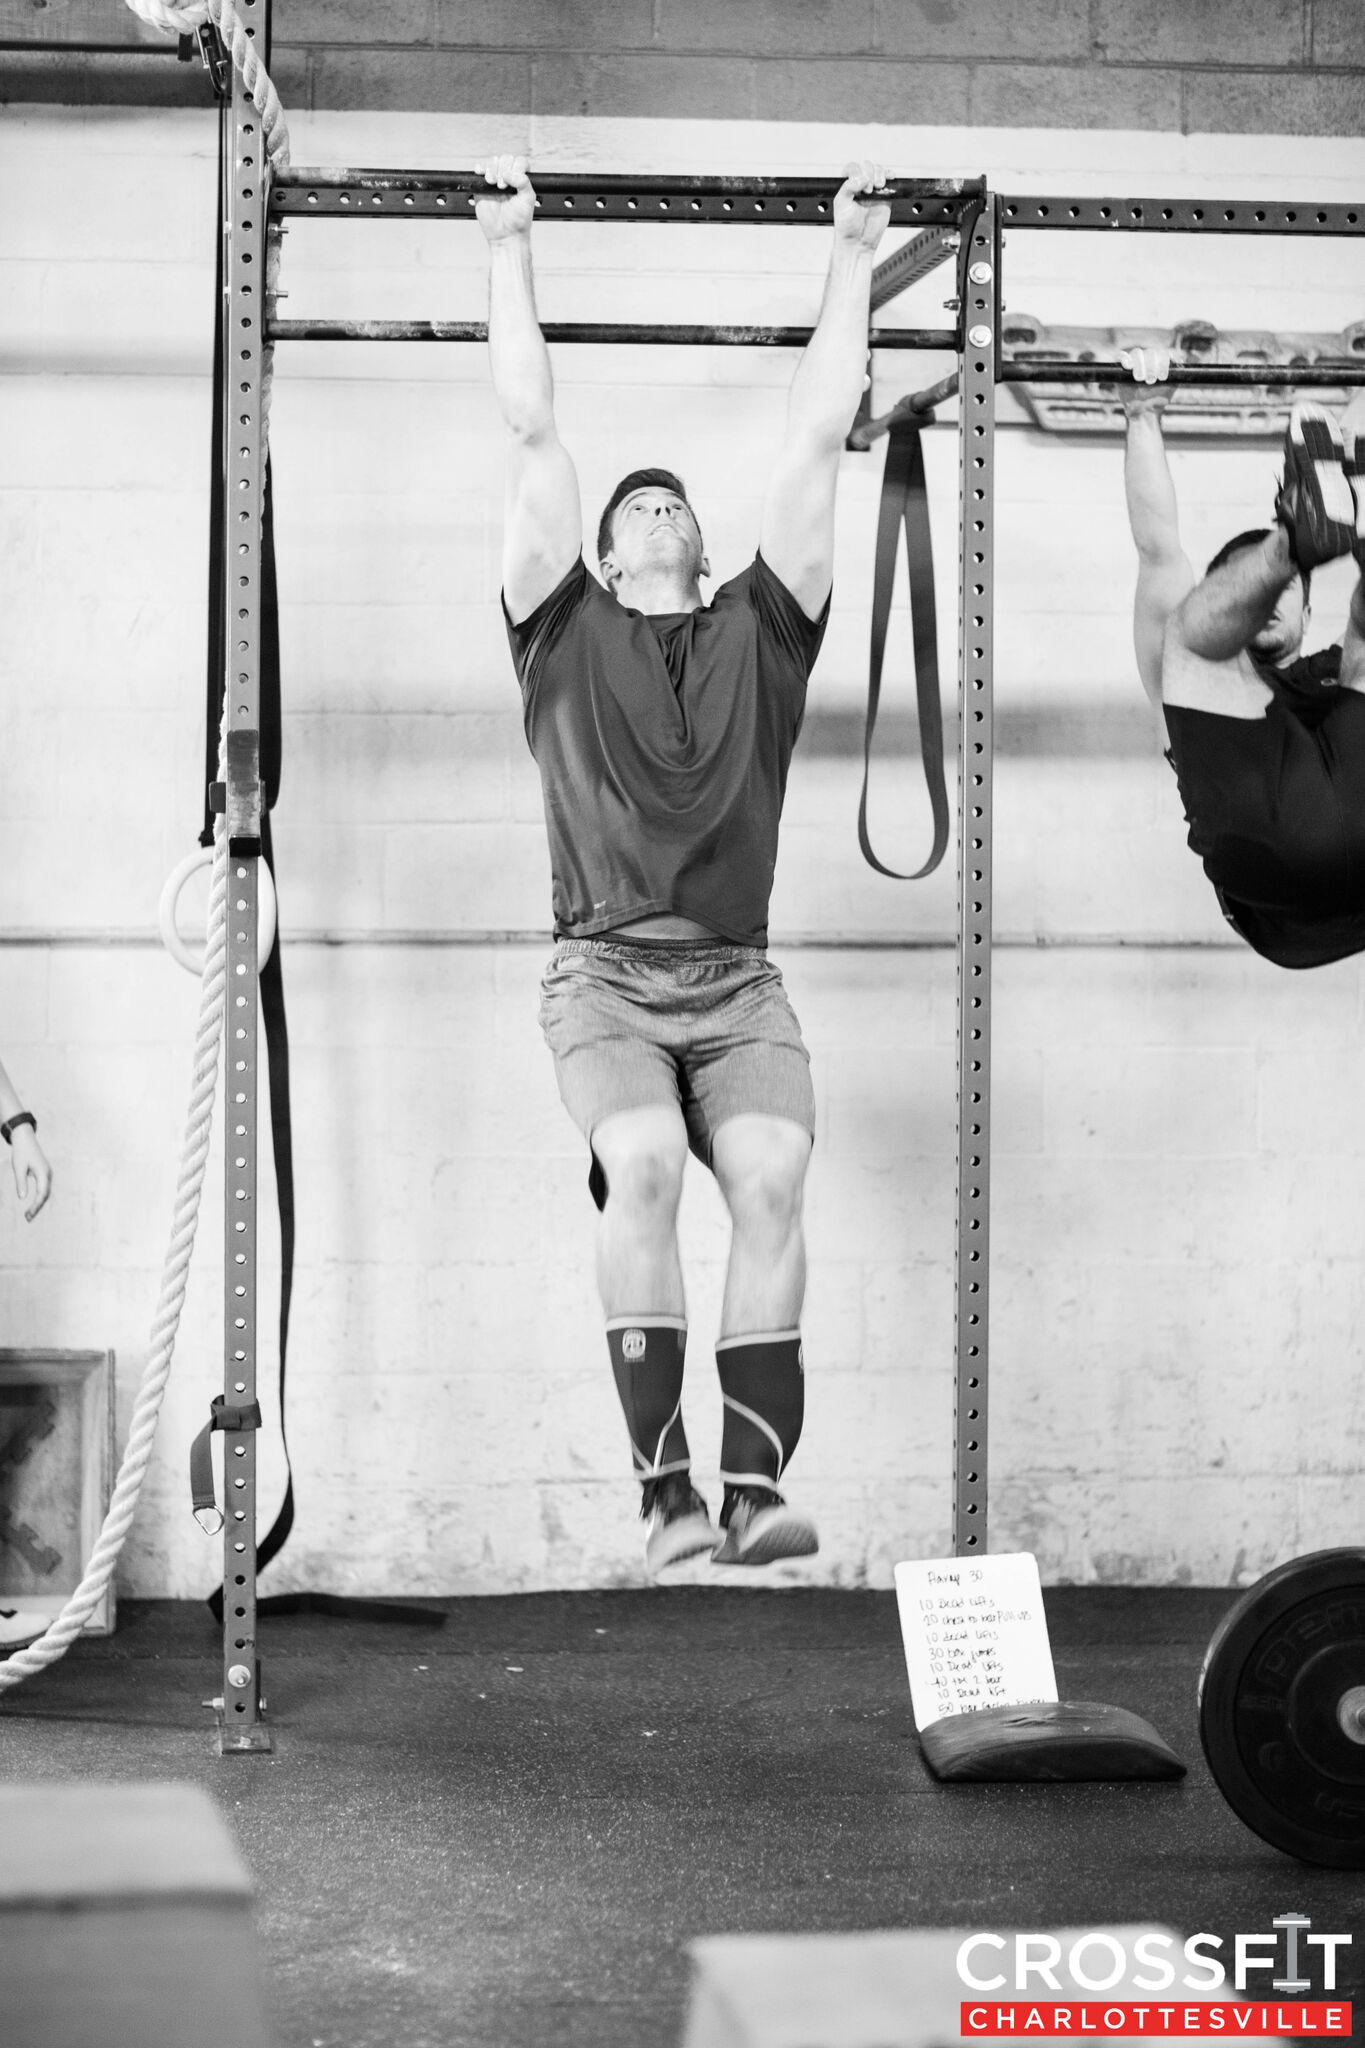 crossfit charlottesville_0632_preview.jpeg